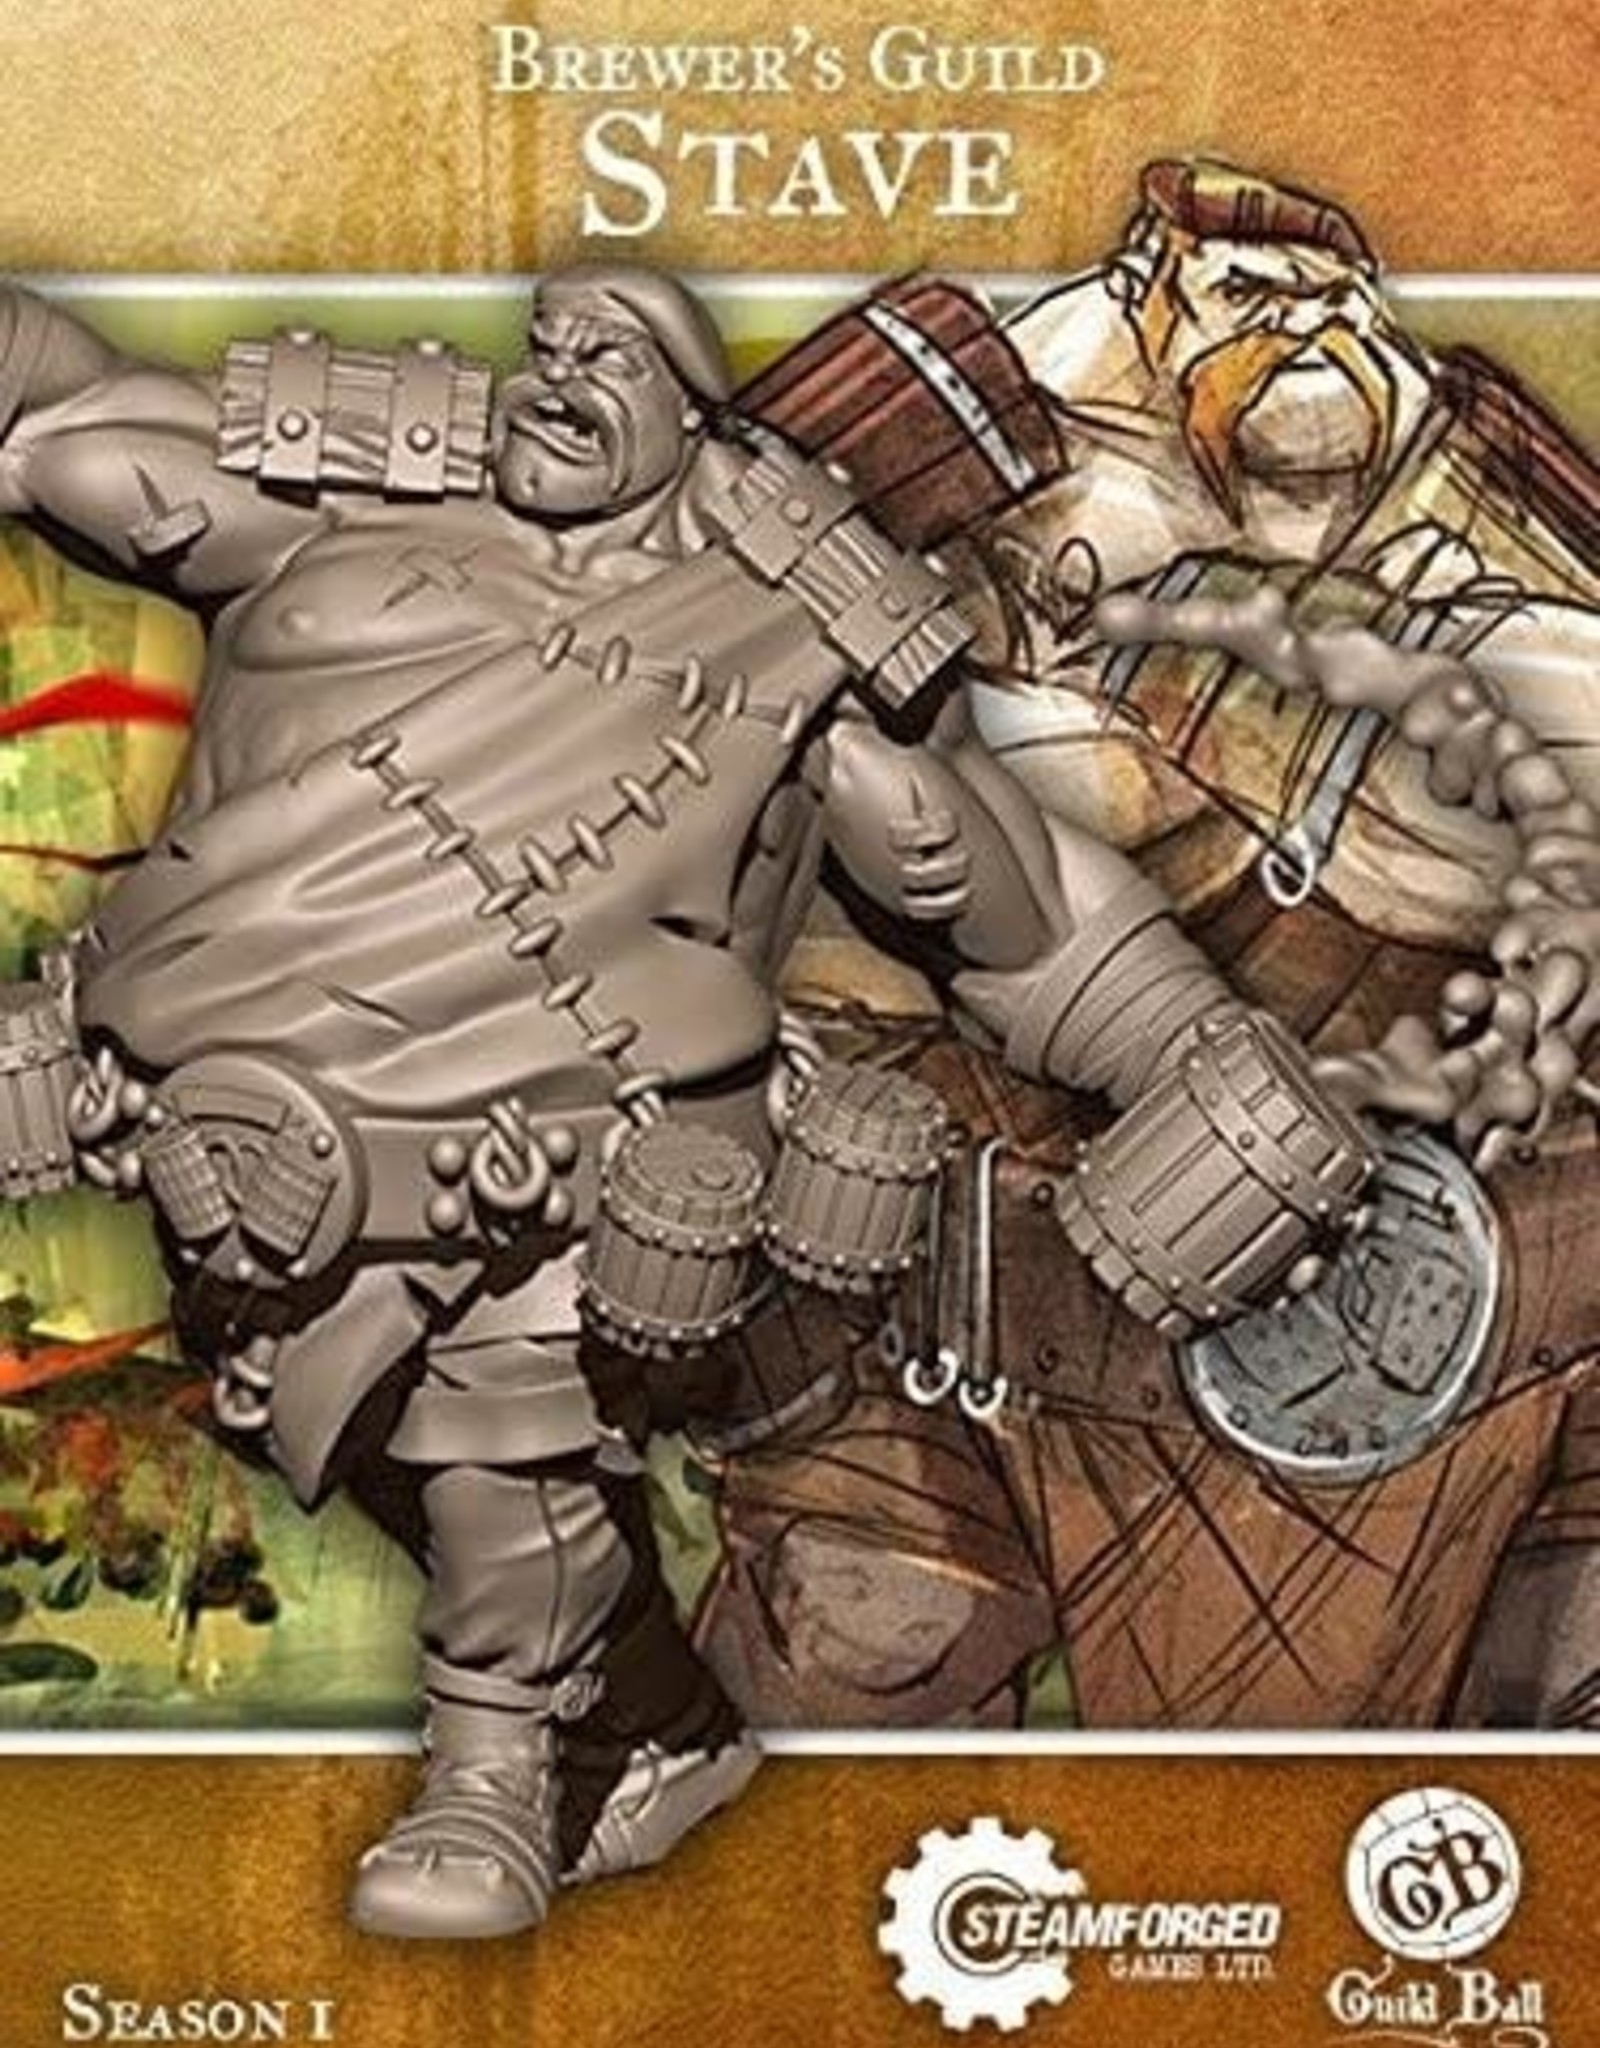 Guild Ball GB - Brewer: Stave